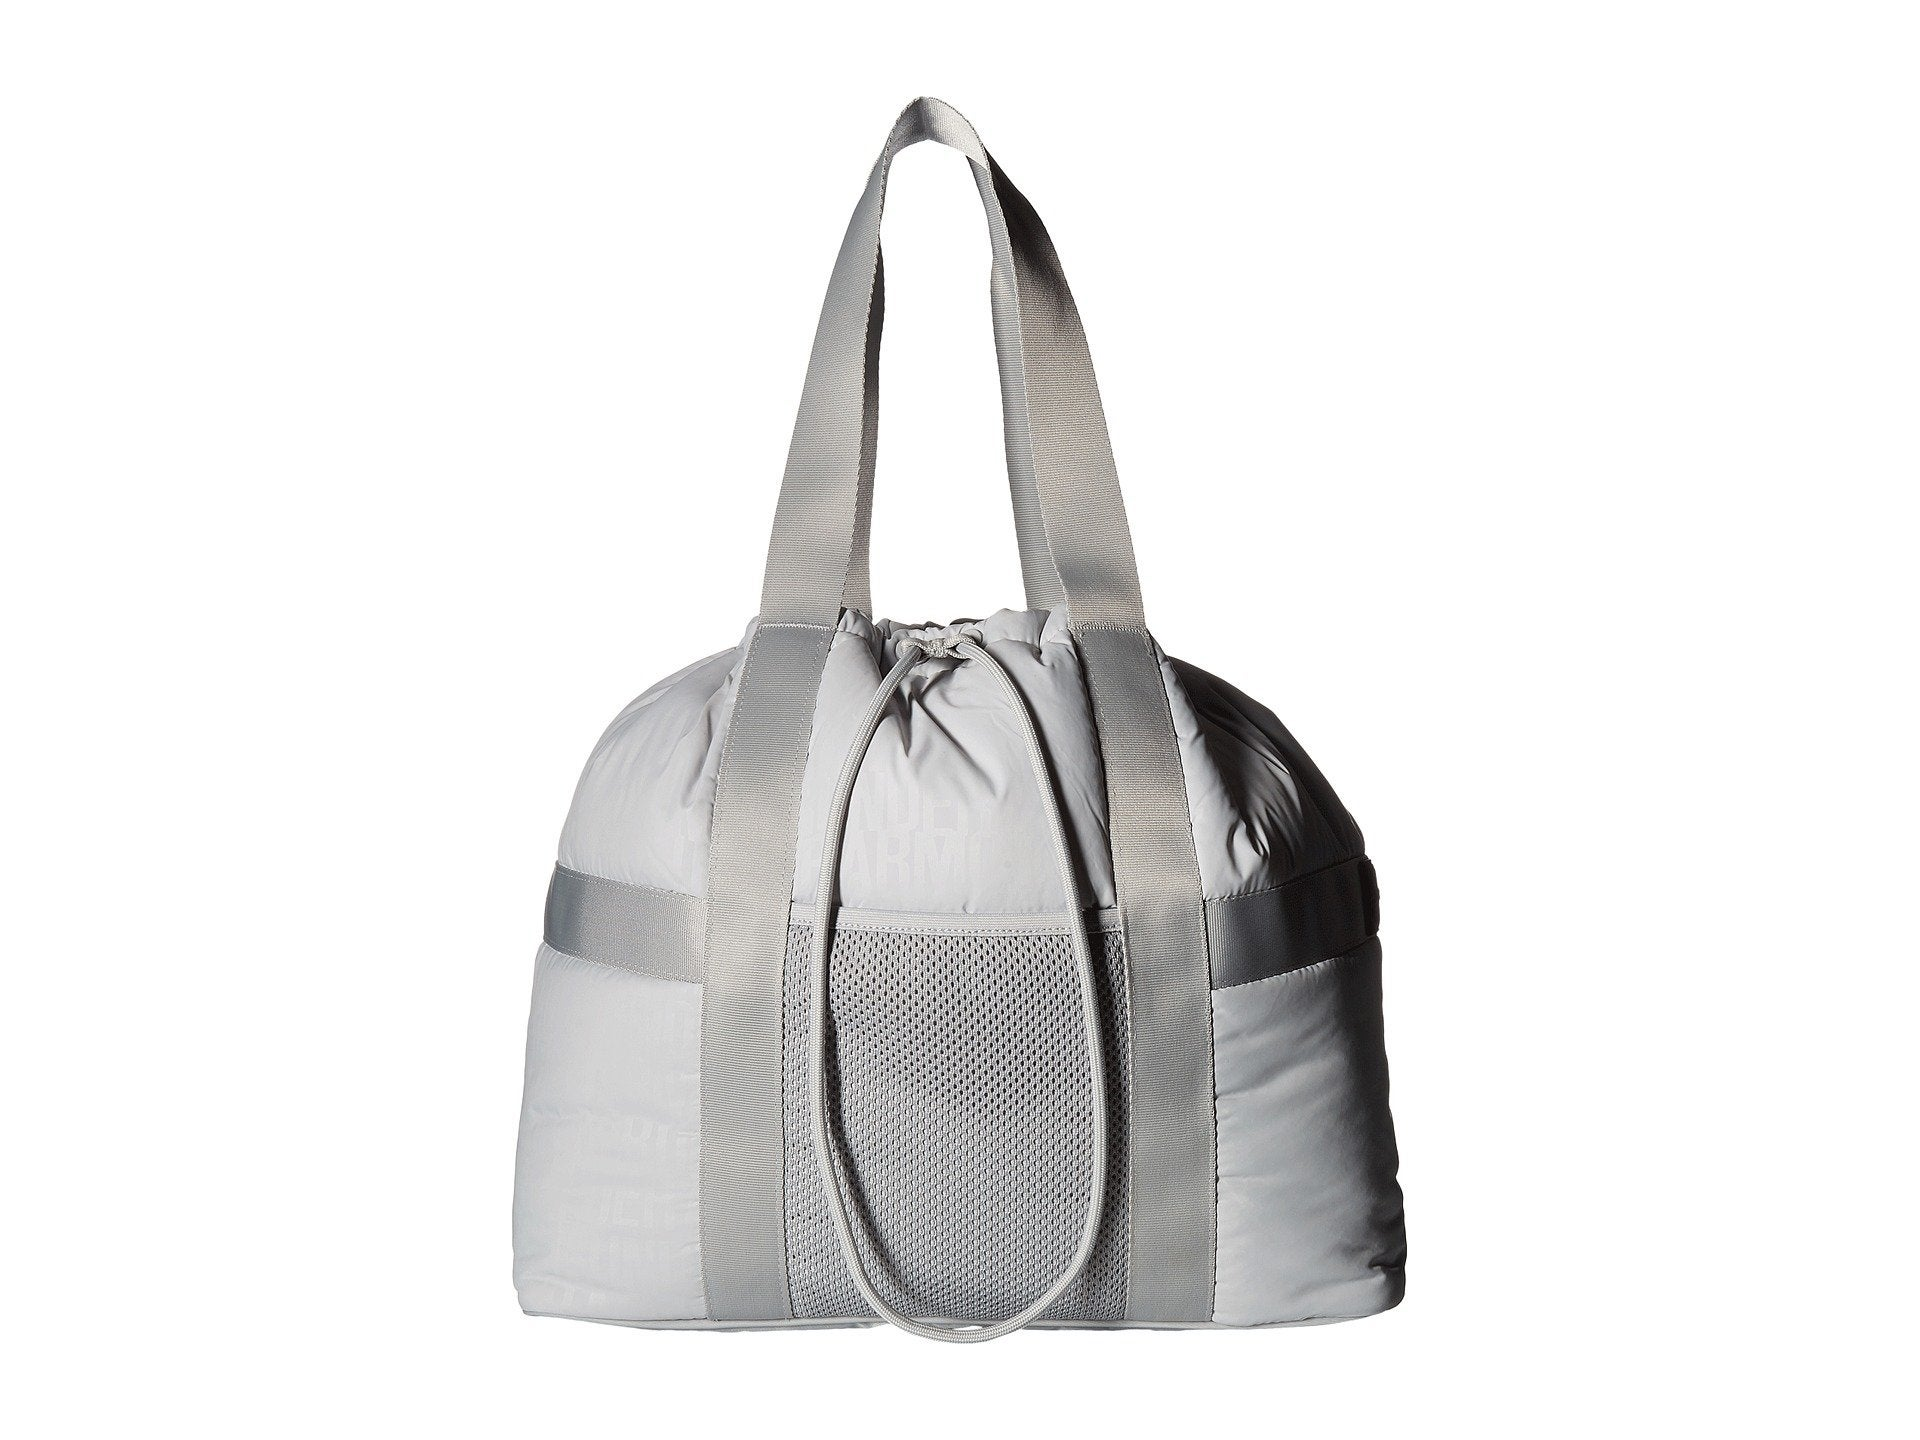 cc3561d1ff Best Gym Bags For Women - Fitness Totes, Sports Duffles